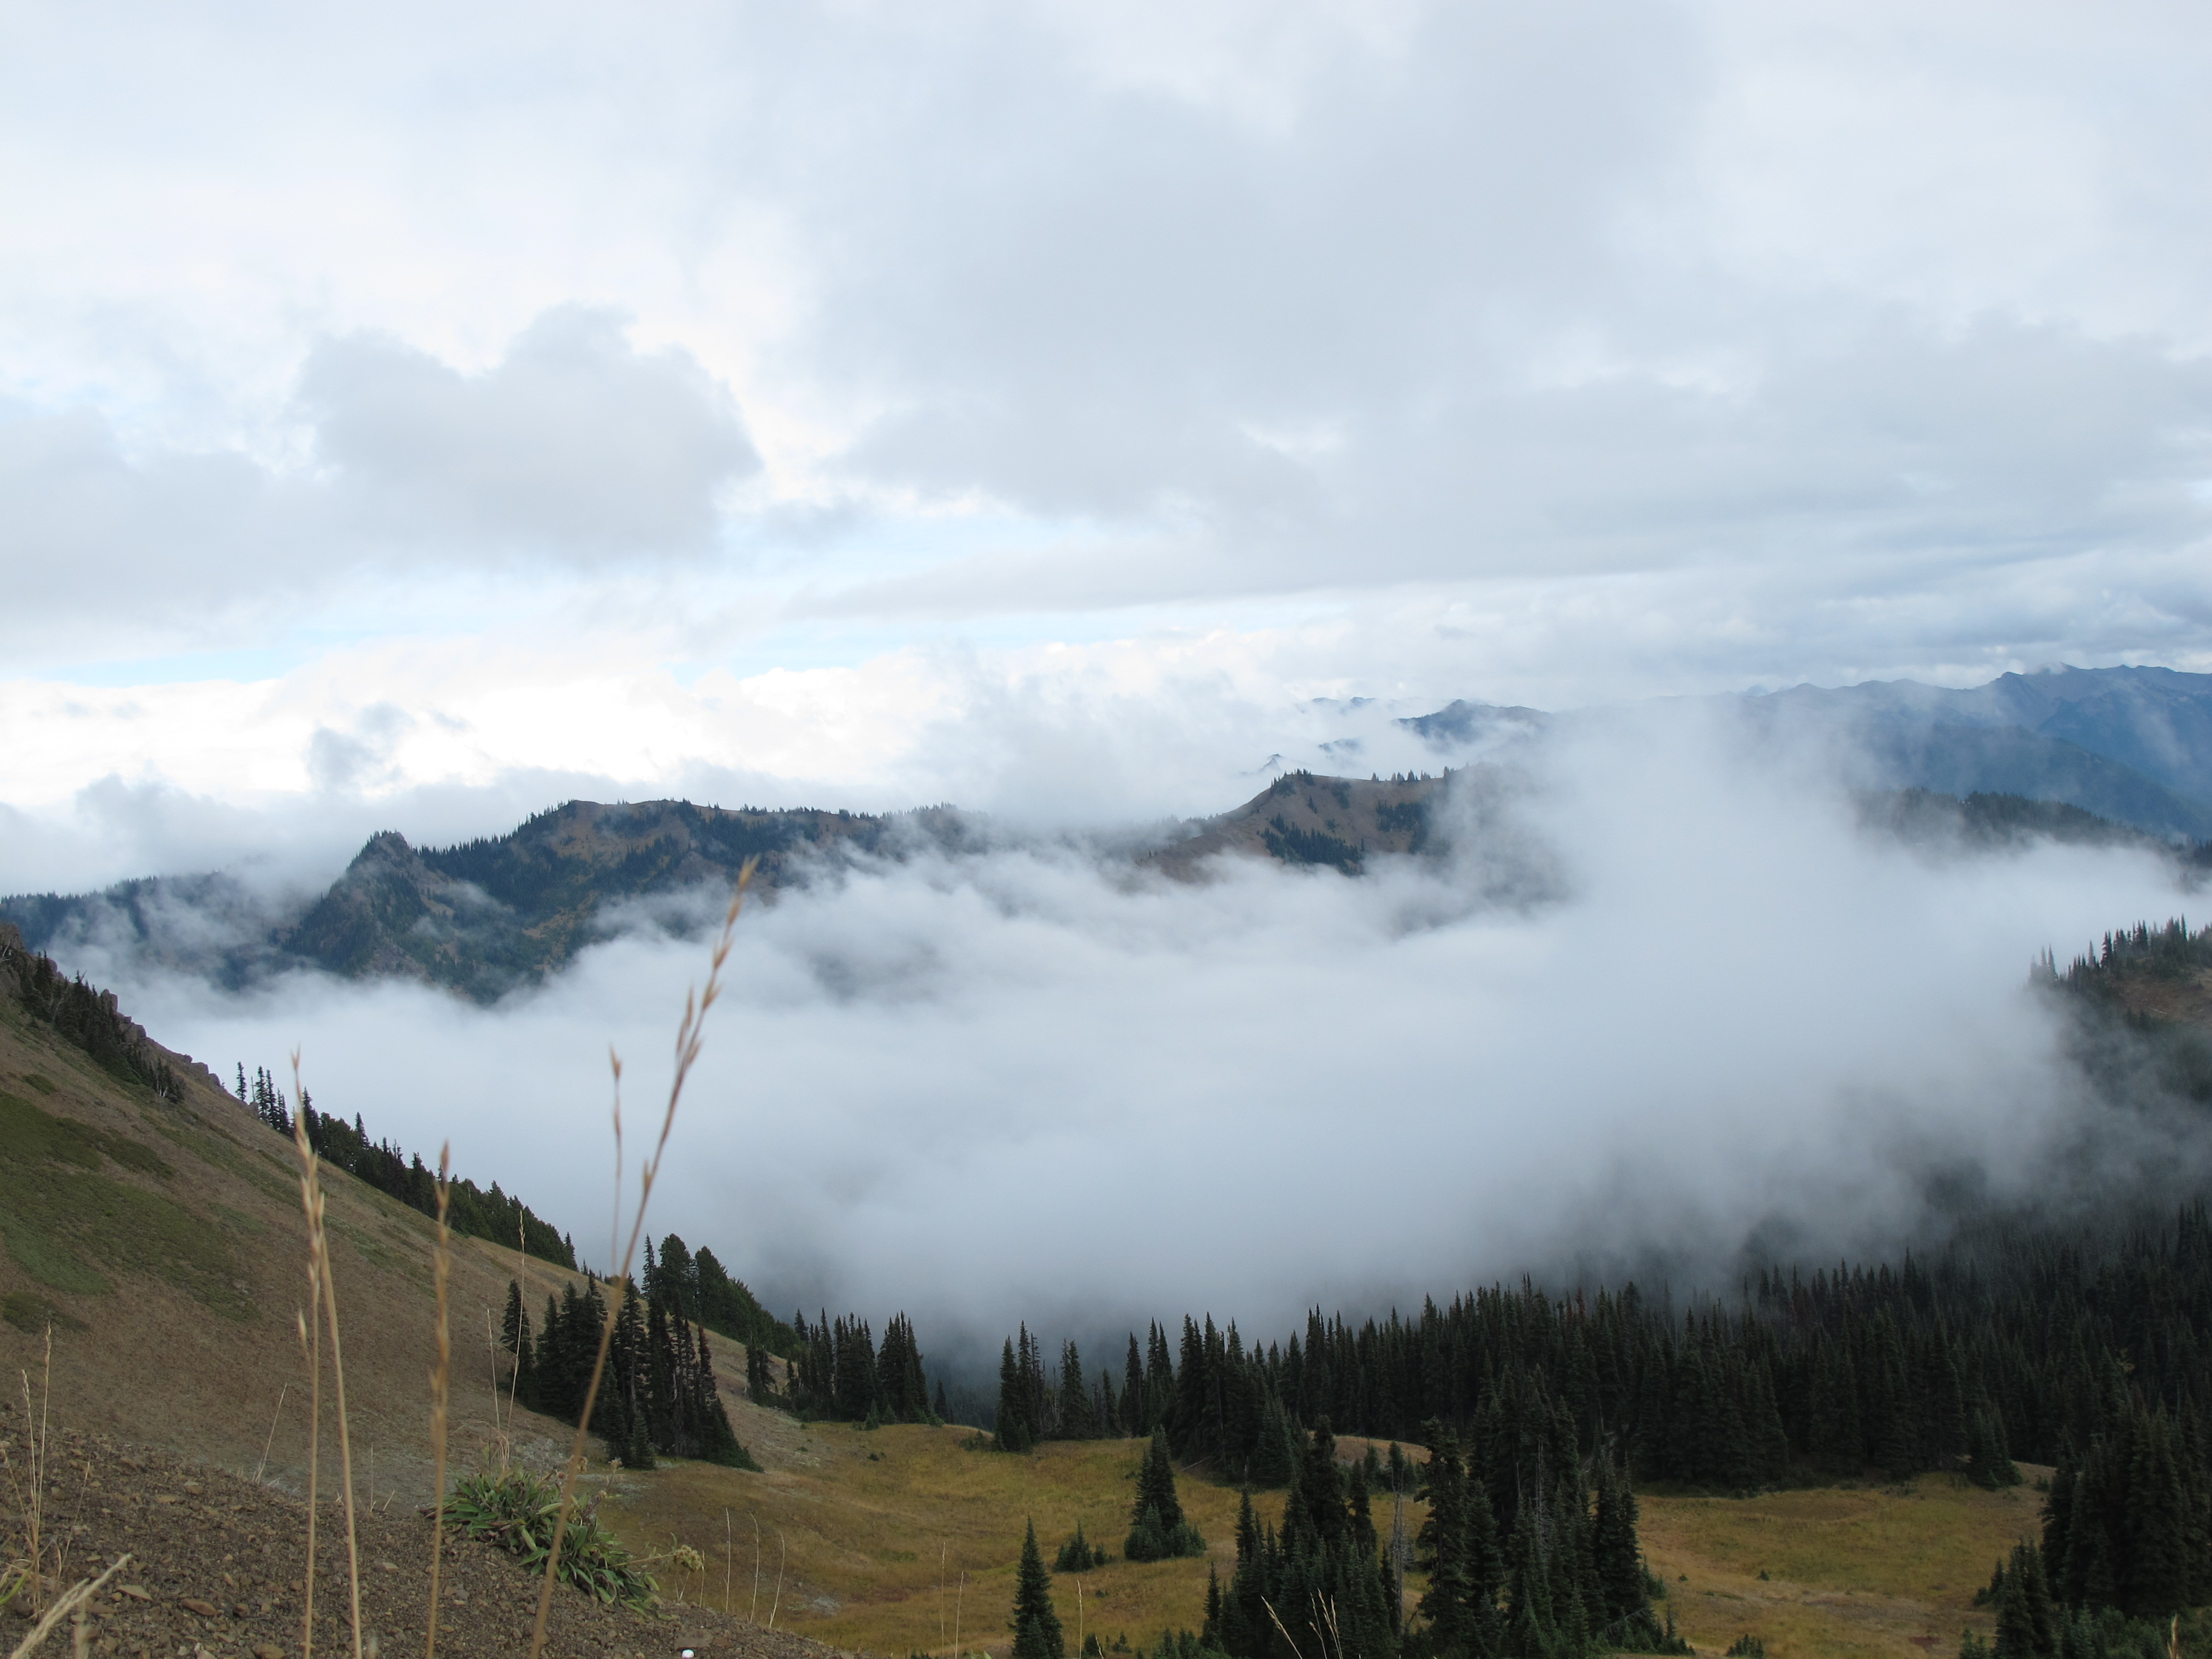 Clouds moving through mountain valleys.